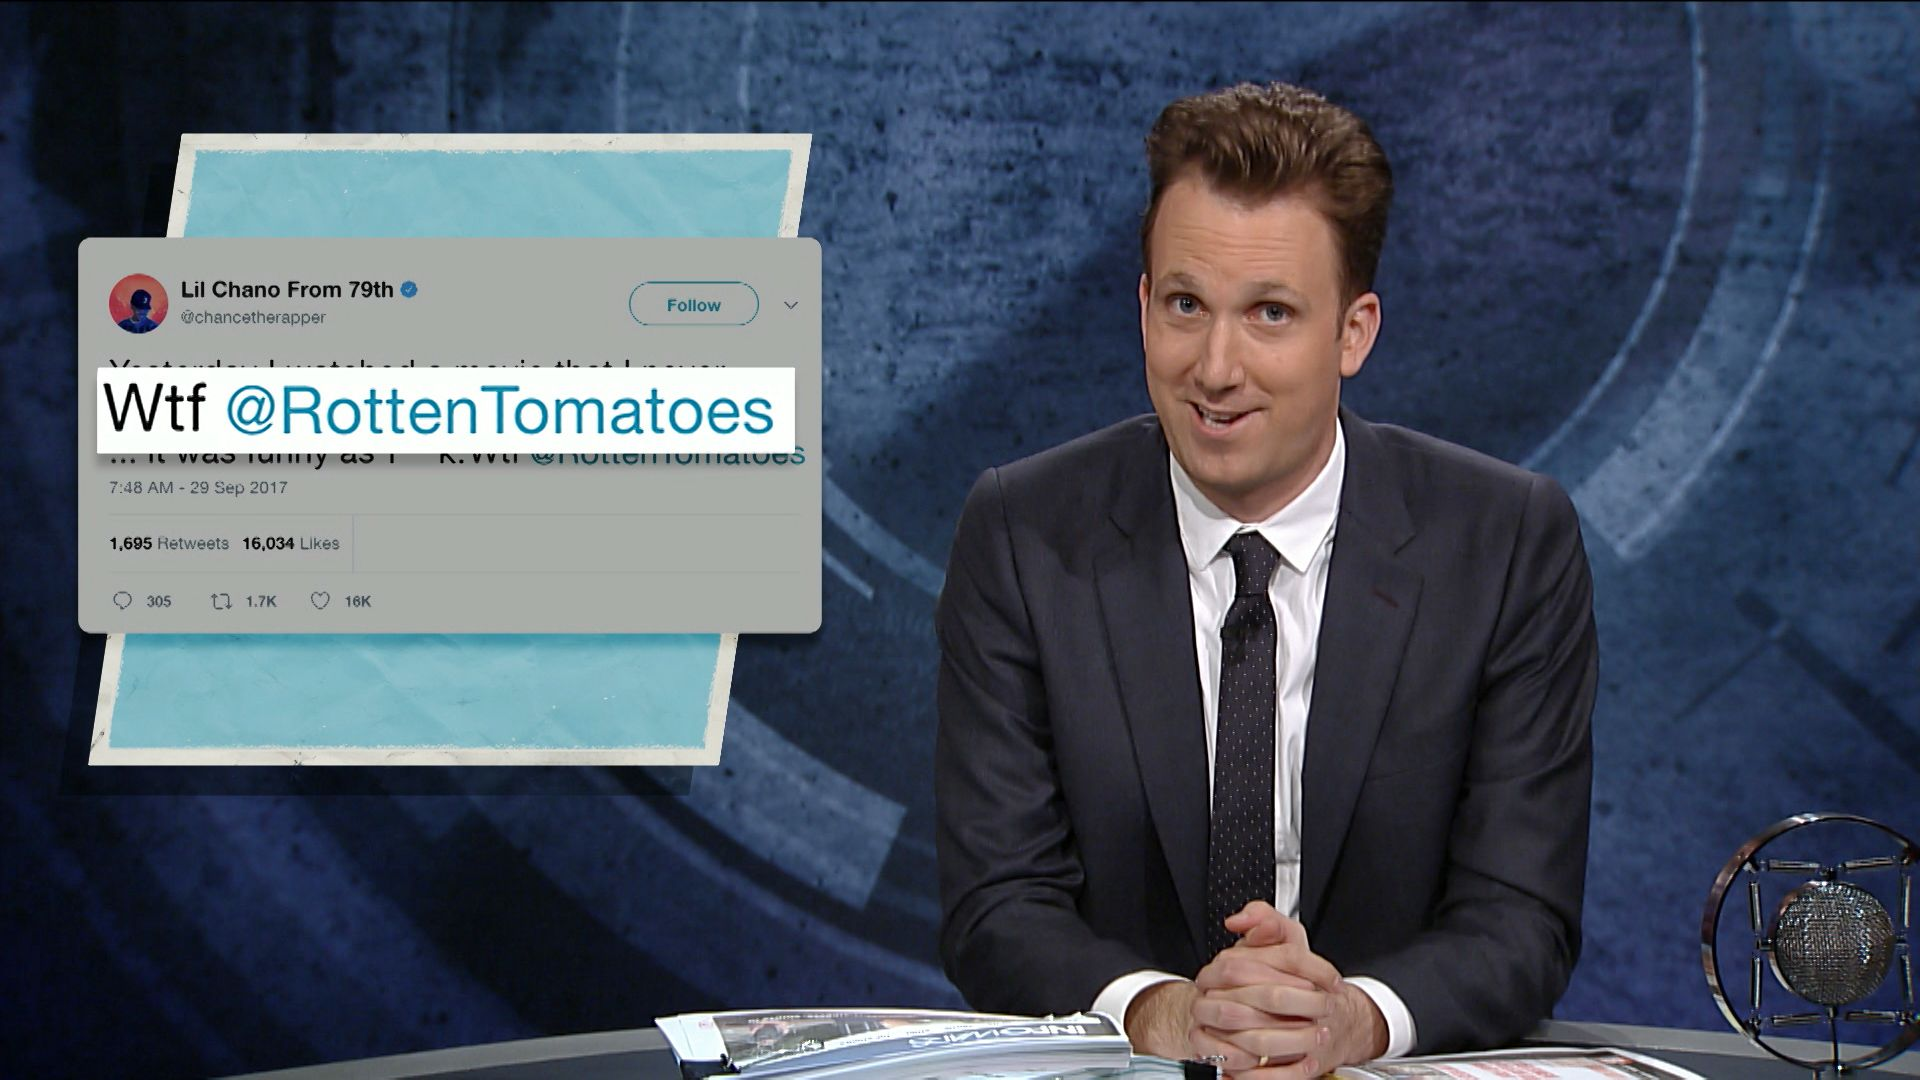 Amusing Jordanklepper Comedy Central Chance Rapper Is Hero America Needs Opposition With Chance Rapper Is Hero America Needs Opposition wedding invitation The Invitation Rotten Tomatoes